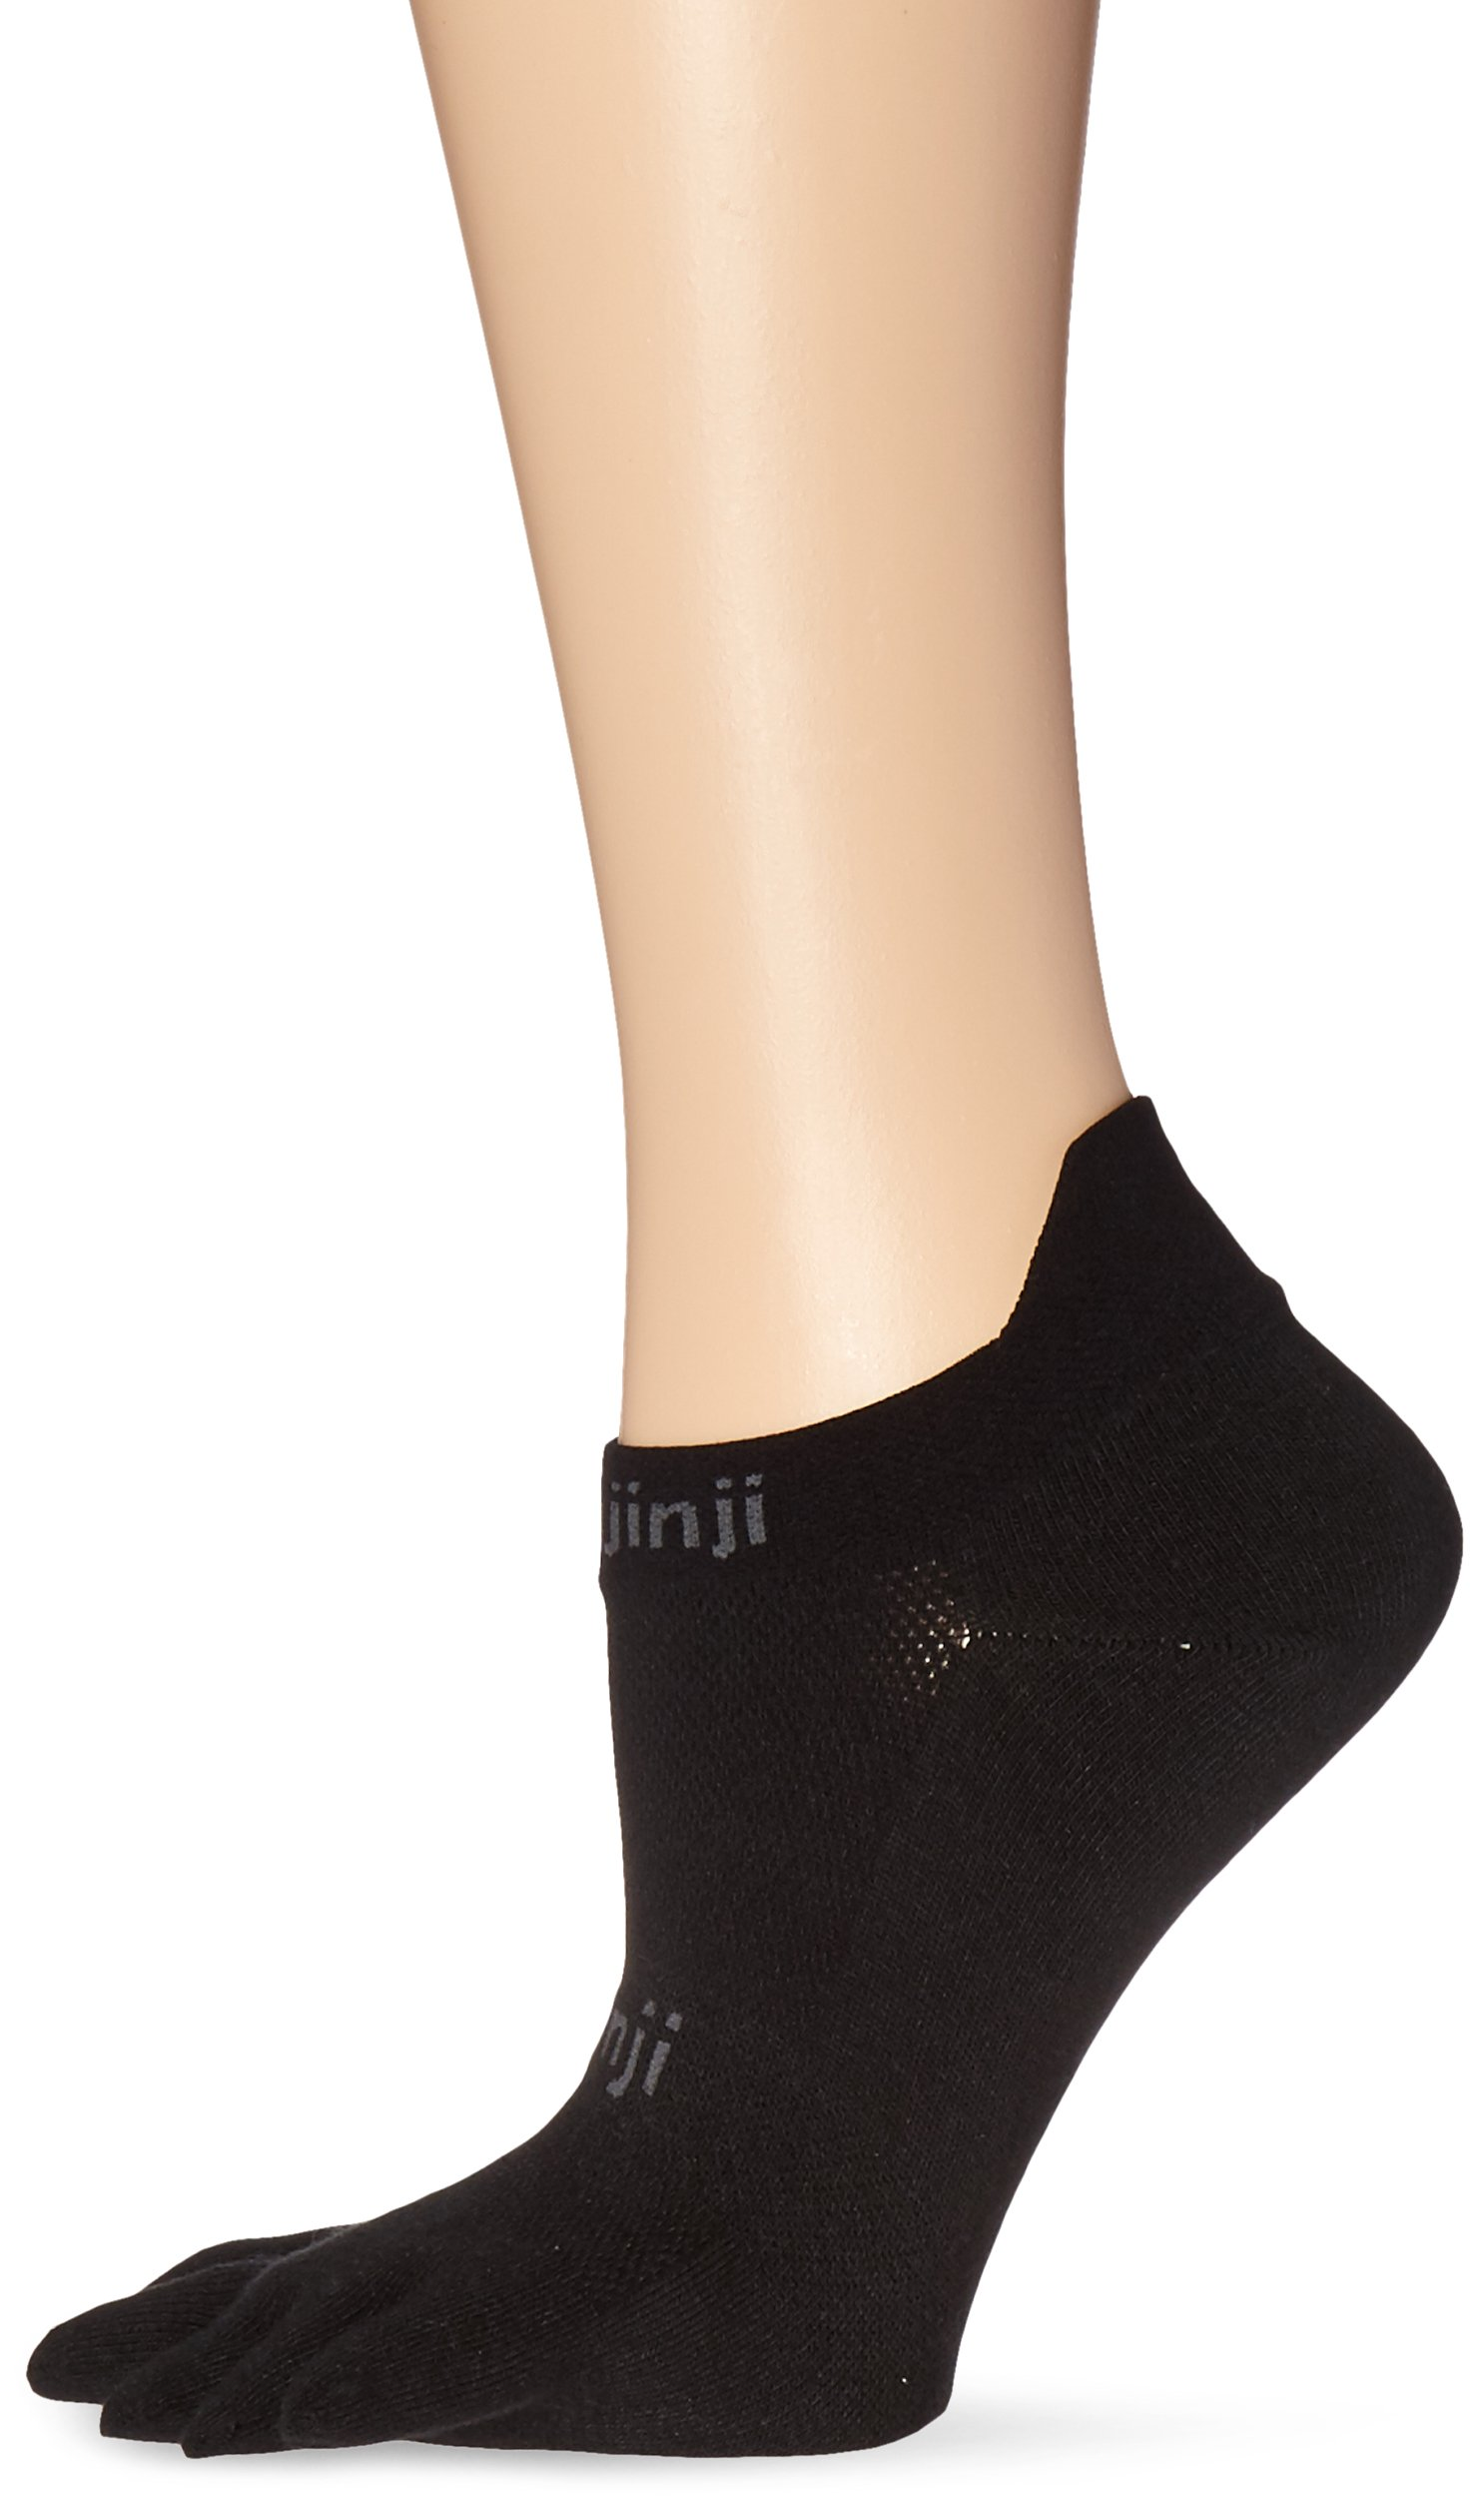 Injinji Run 2.0 Lightweight No Show Toe Socks 3 Pack (Black, Medium) by Injinji